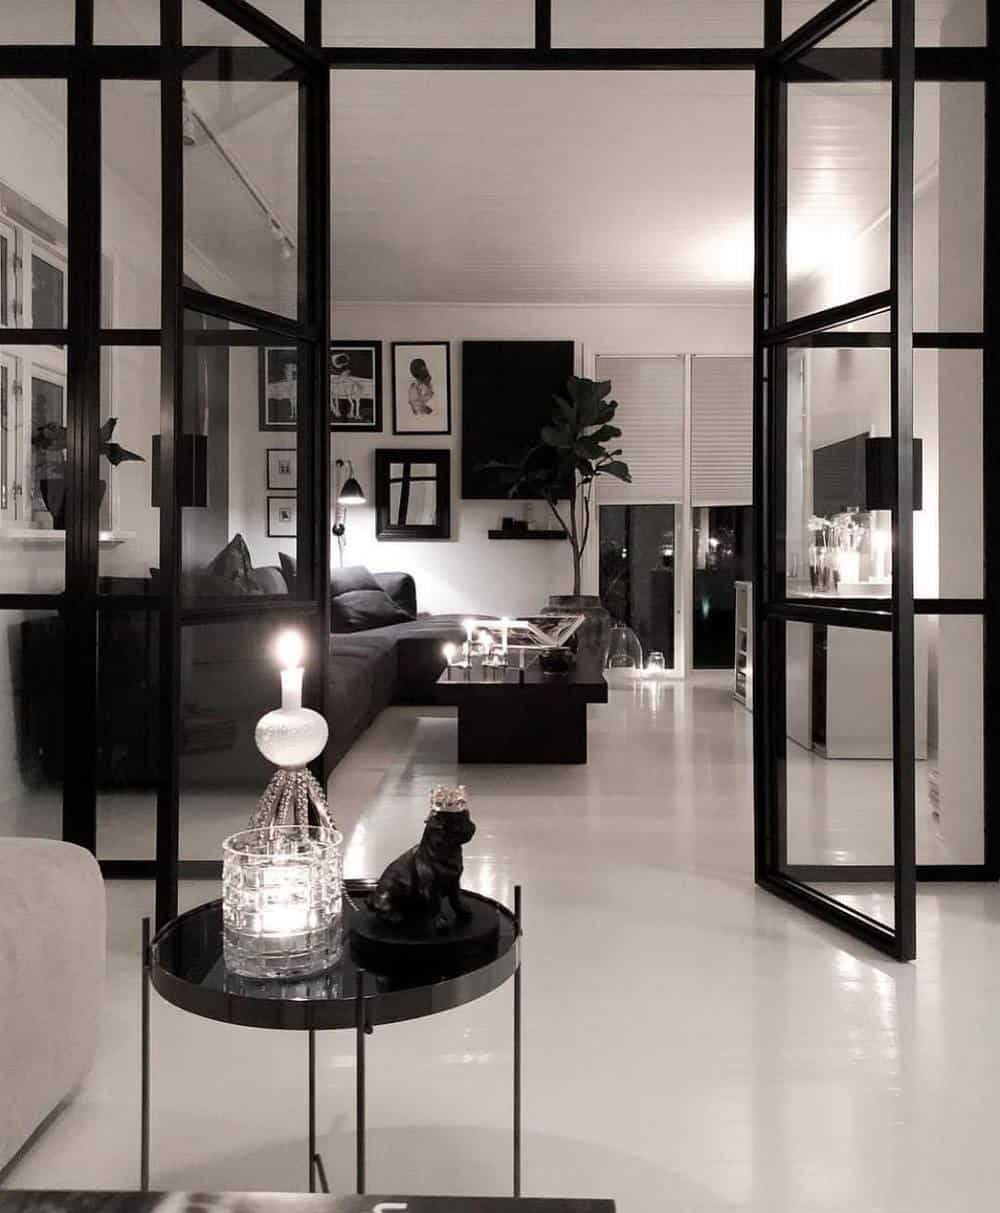 Decorate Your Living Room With These Inspiring Wall Ideas - Monotone Home Theme